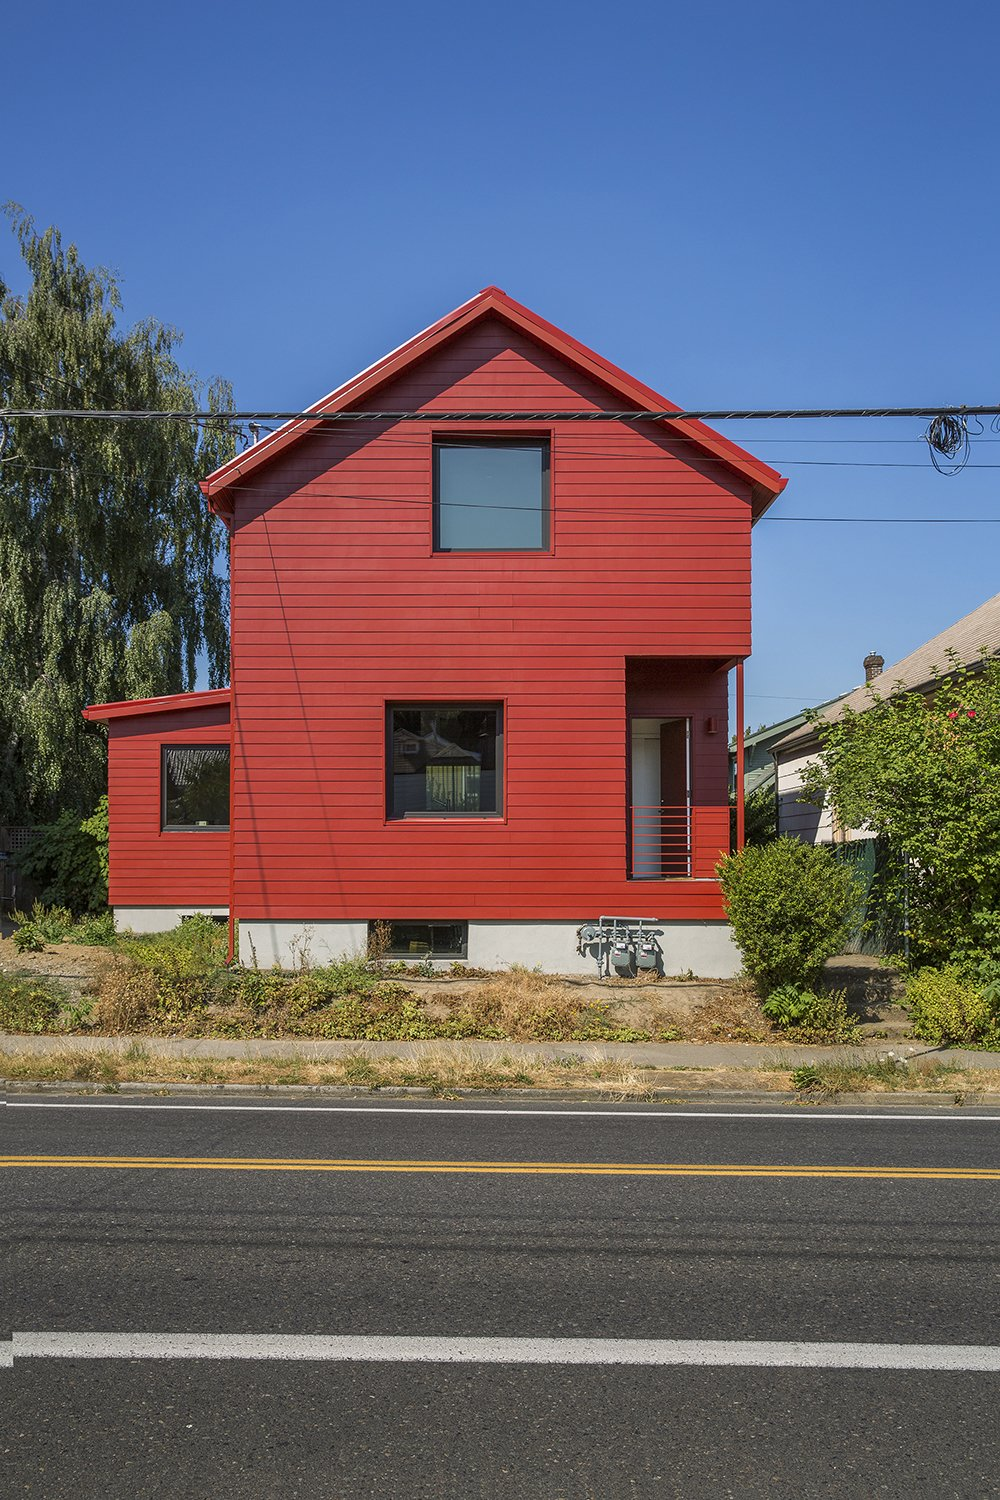 Two-foot-deep windowsills were carved out of the facade to augment the home's sculptural profile.  A Bright Red Farmhouse-Style Home That's Surprisingly Modern Inside by Luke Hopping